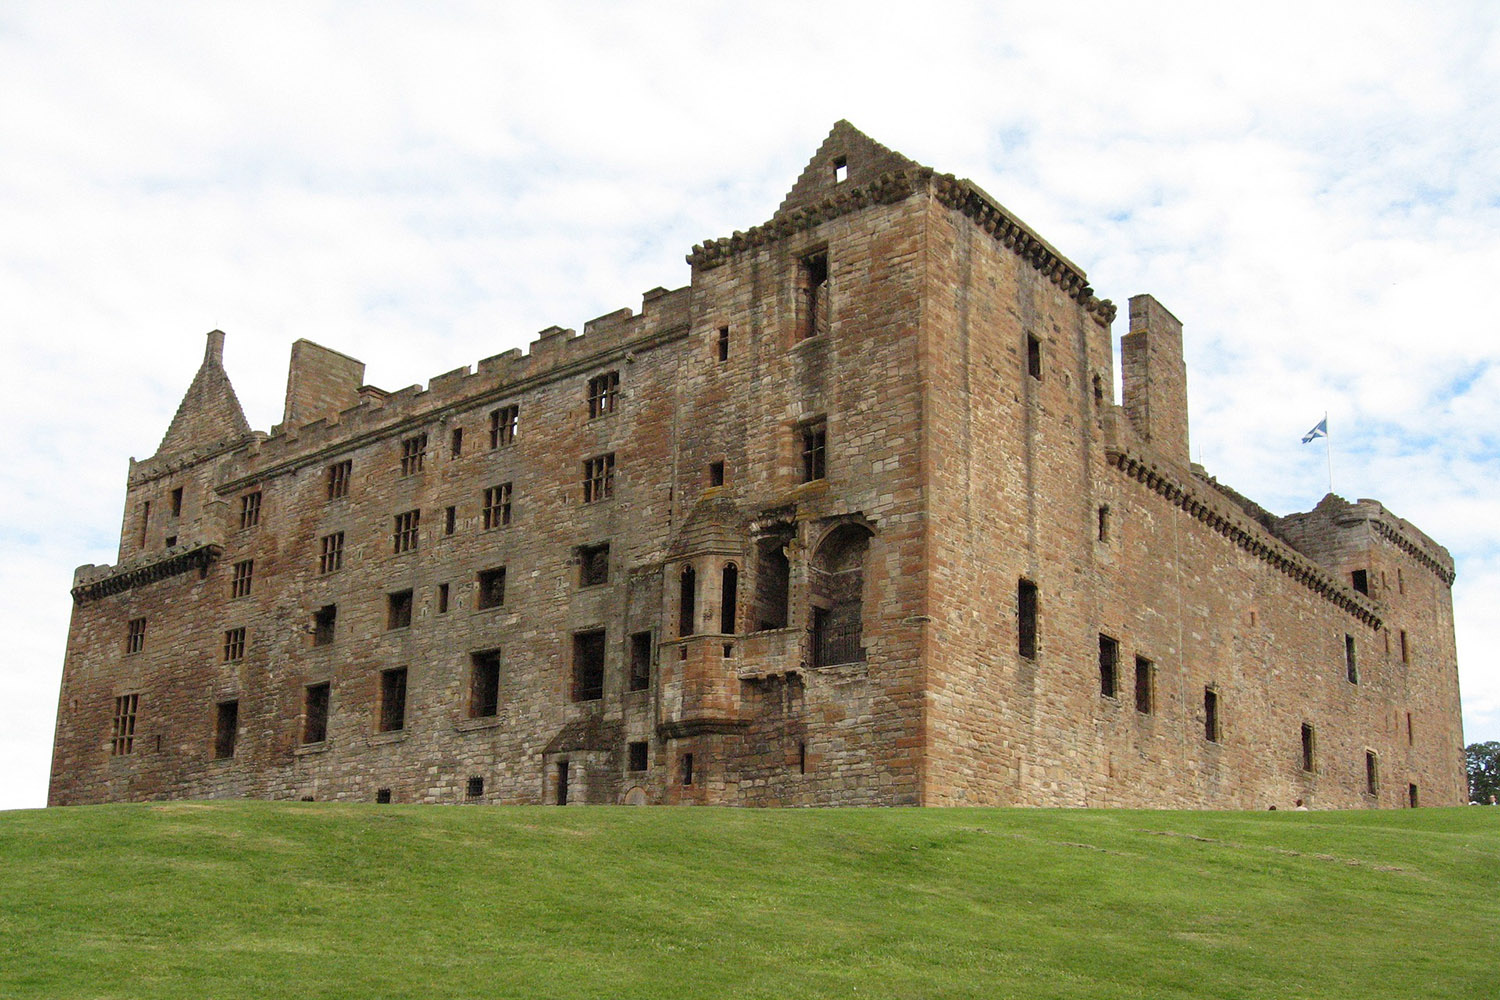 Linlithgow Palace, the birth place of Mary Queen of Scots can be visited on our Mary Queen of Scots tour